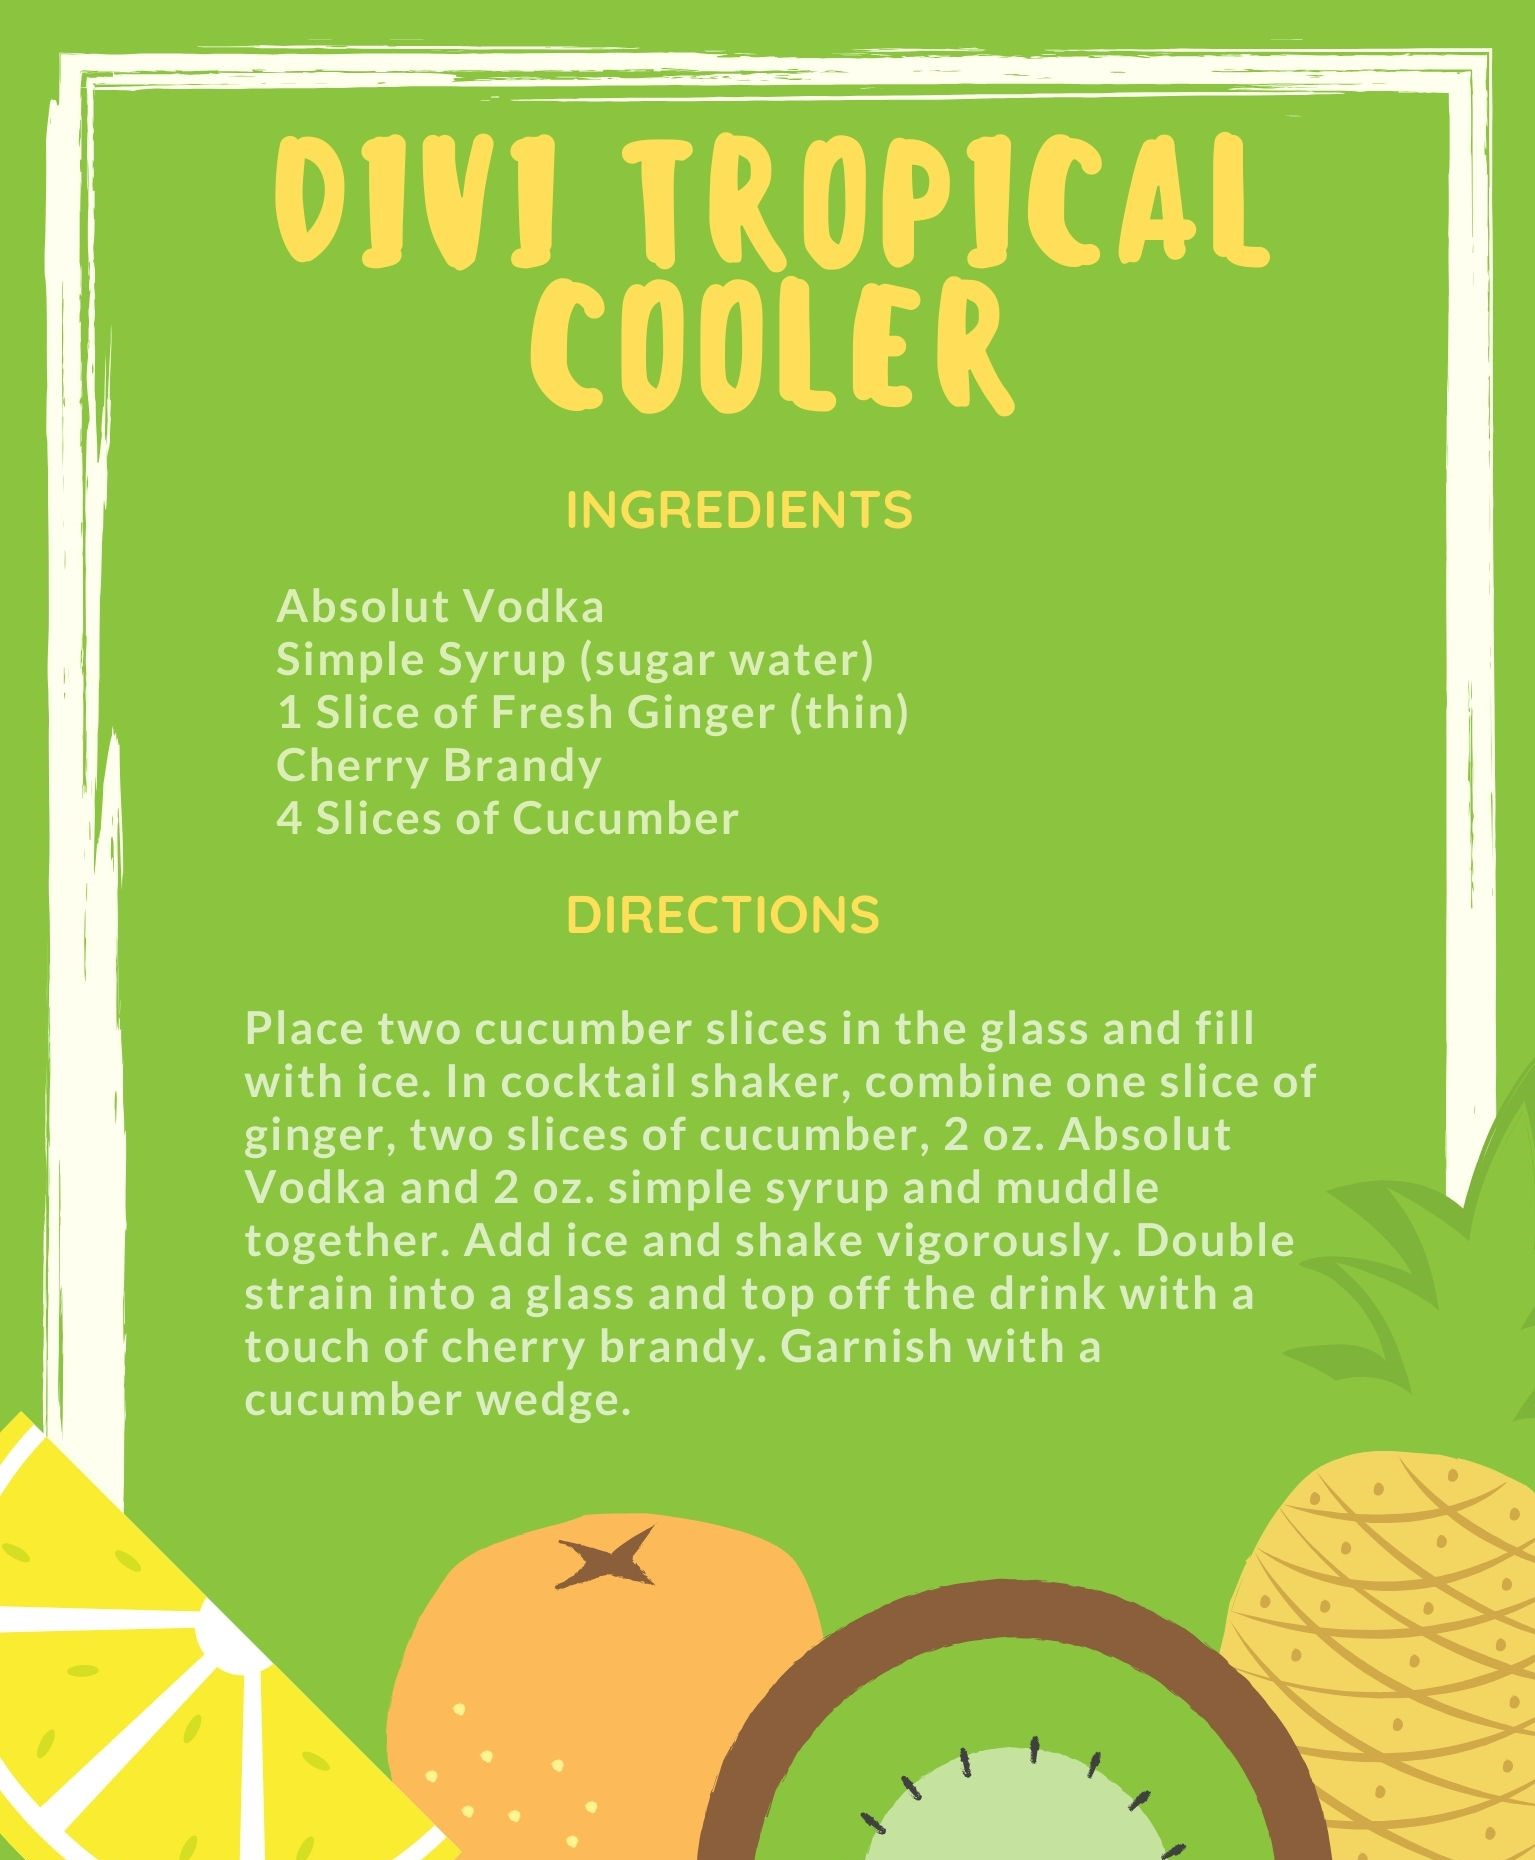 Divi Tropical Cooler